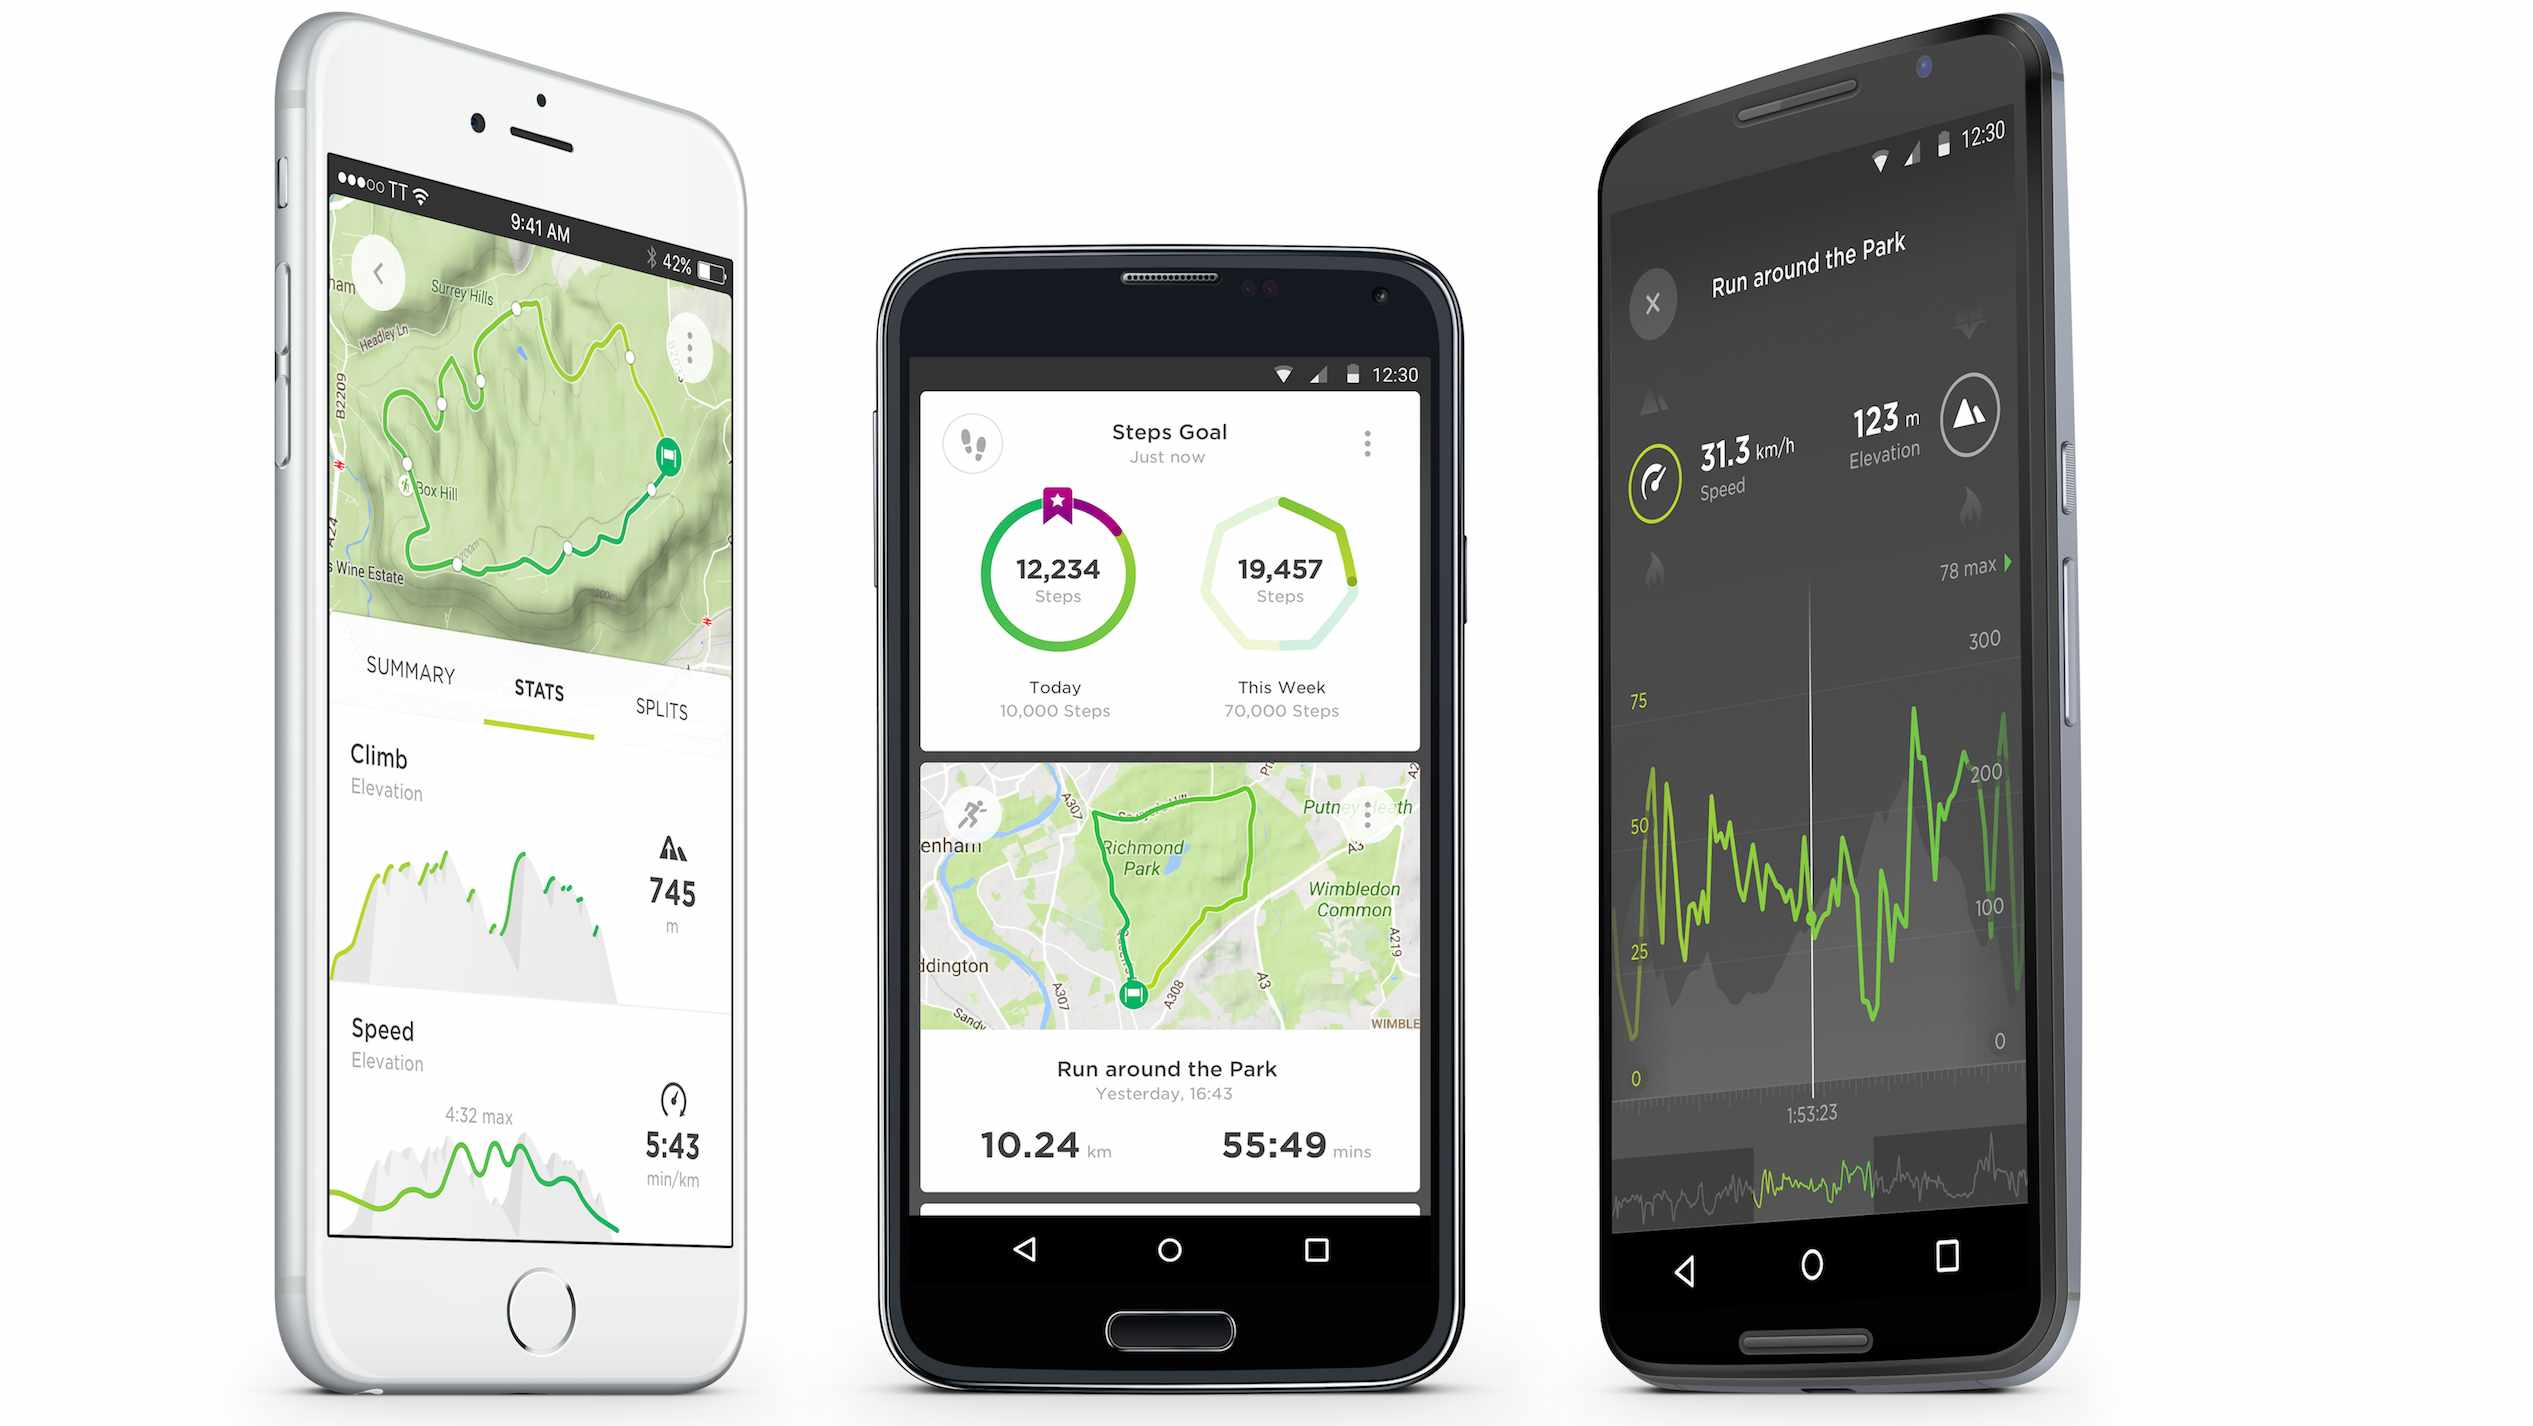 The TomTom Sports app promises to bring gentle encouragement